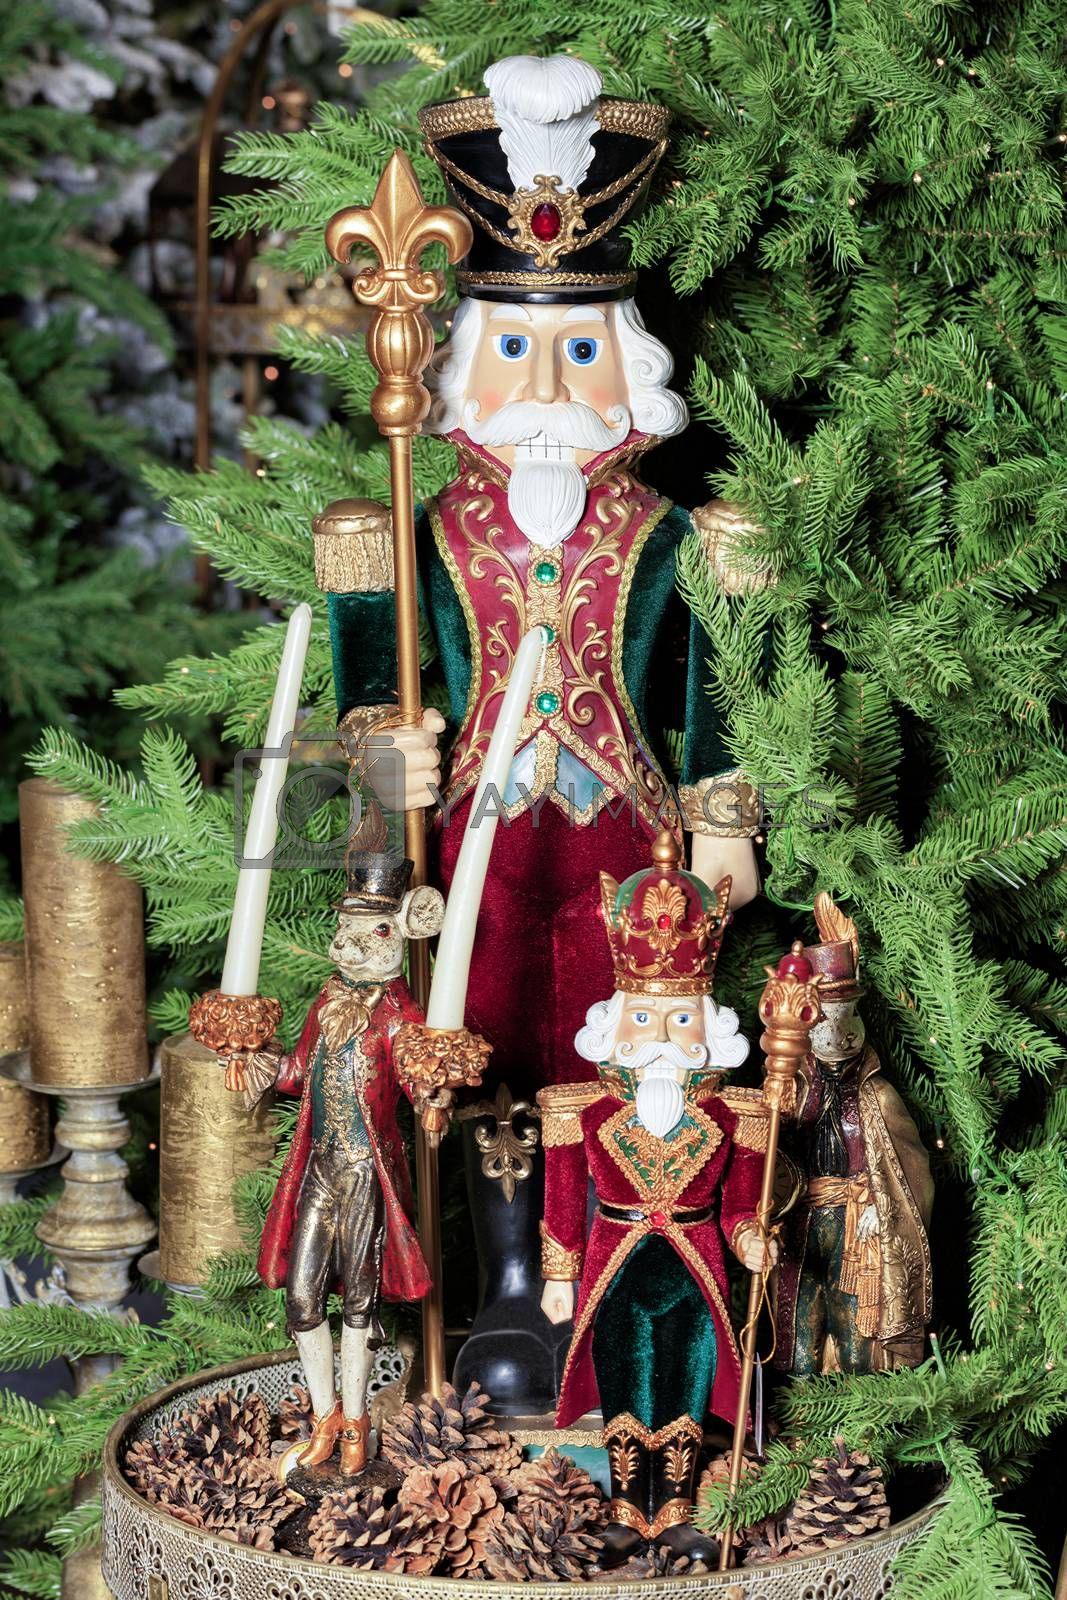 Royalty free image of Decorative Christmas toys from old tales on a background of green spruce branches and cones. by Sergii